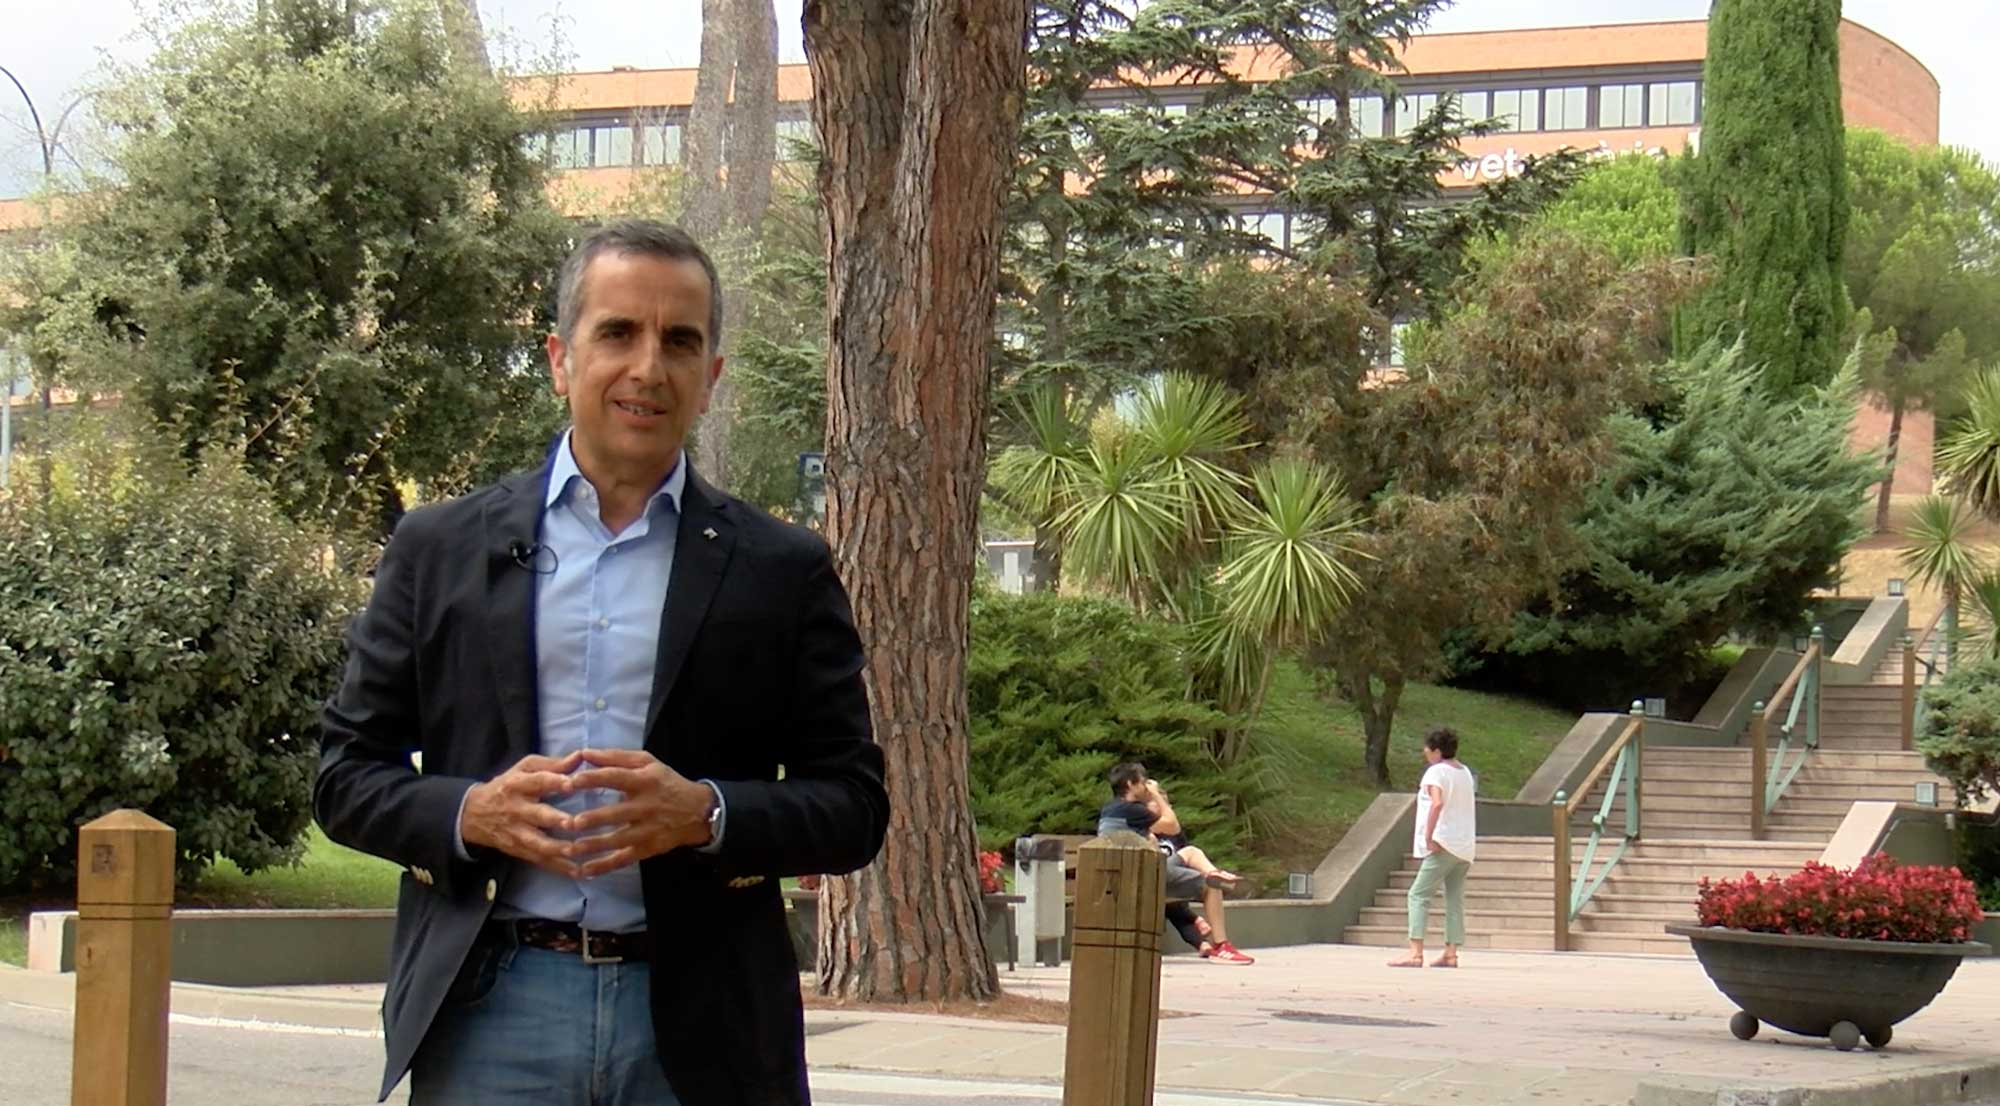 Màrius Martínez greeting with a new academic year